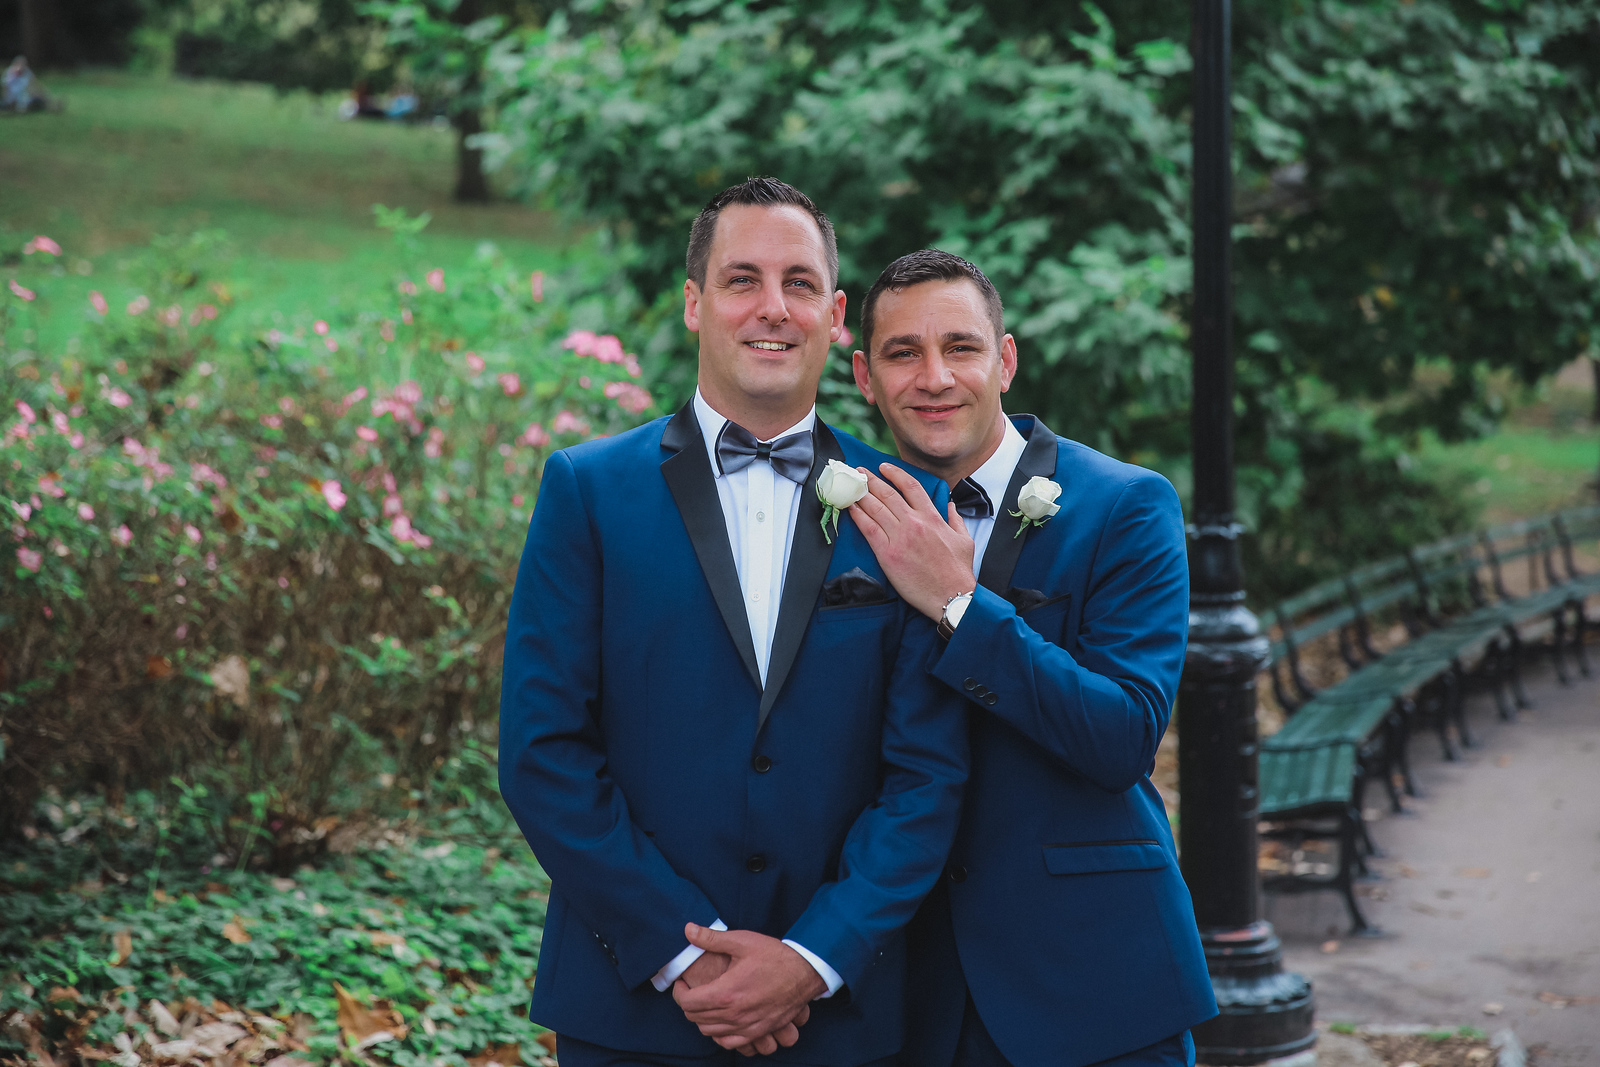 Central Park Wedding - Ricky & Shaun-33